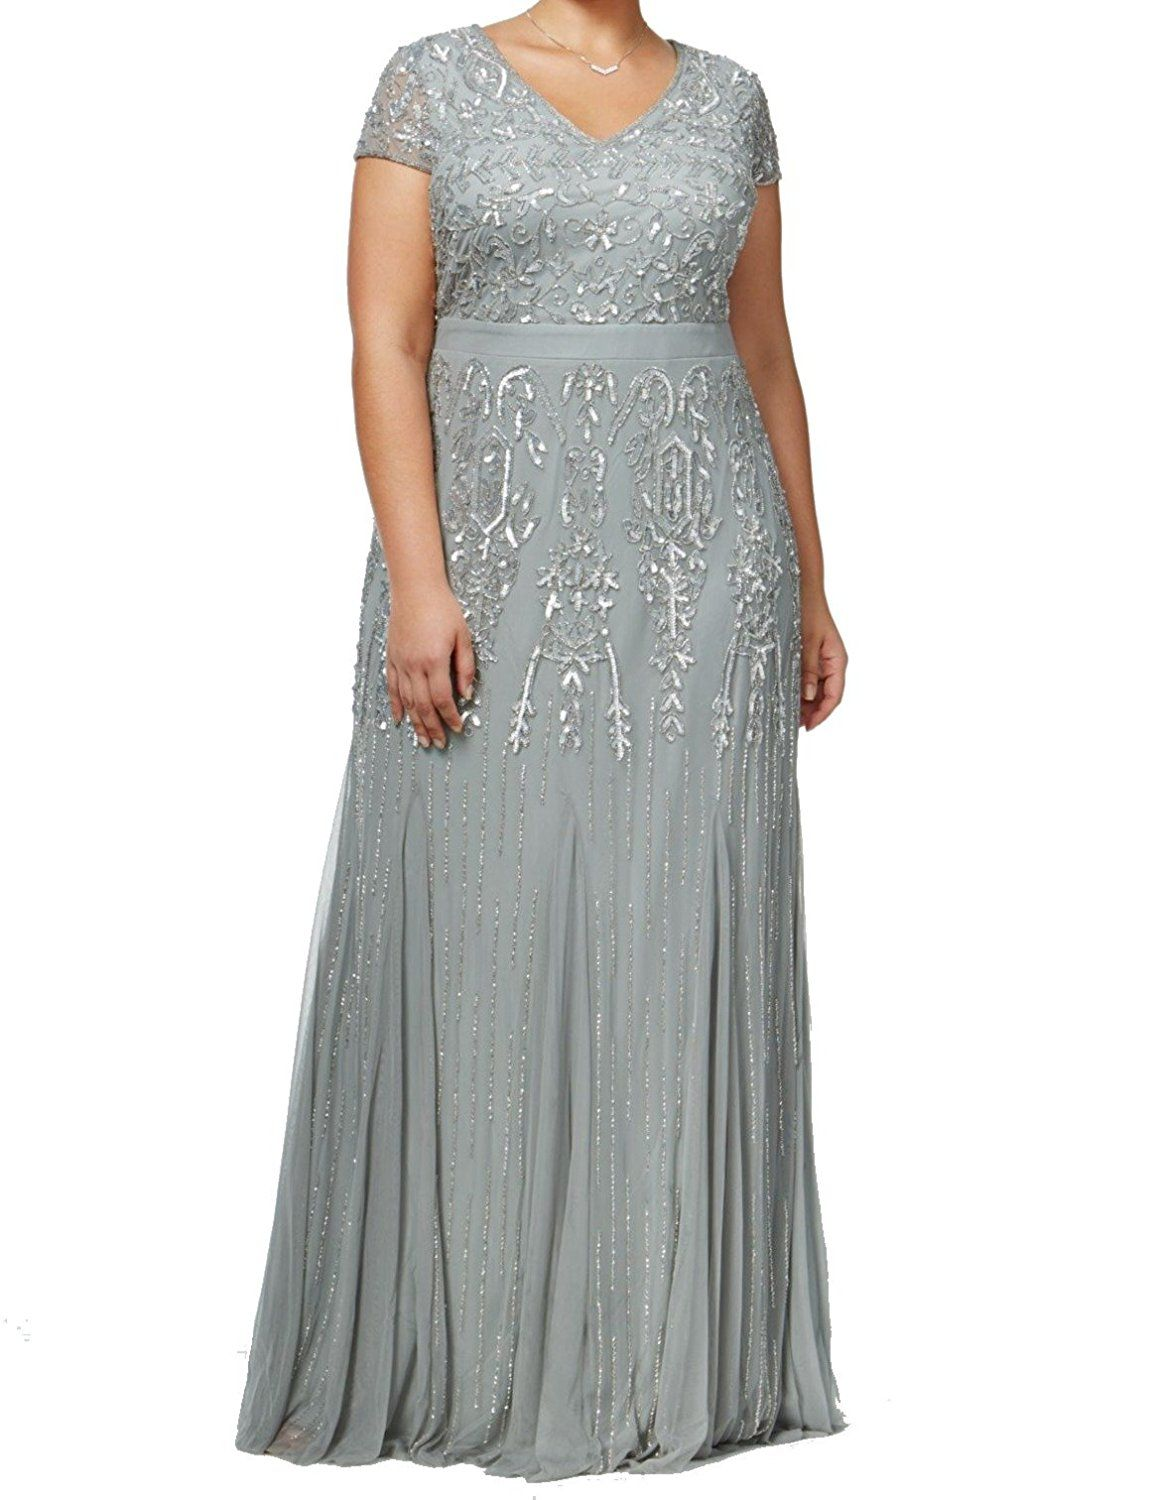 a87c70986c48 Plus Size Wedding Guest Dresses - Adrianna Papell Plus Size Beaded V-Neck Evening  Gown Dress (sponsored)